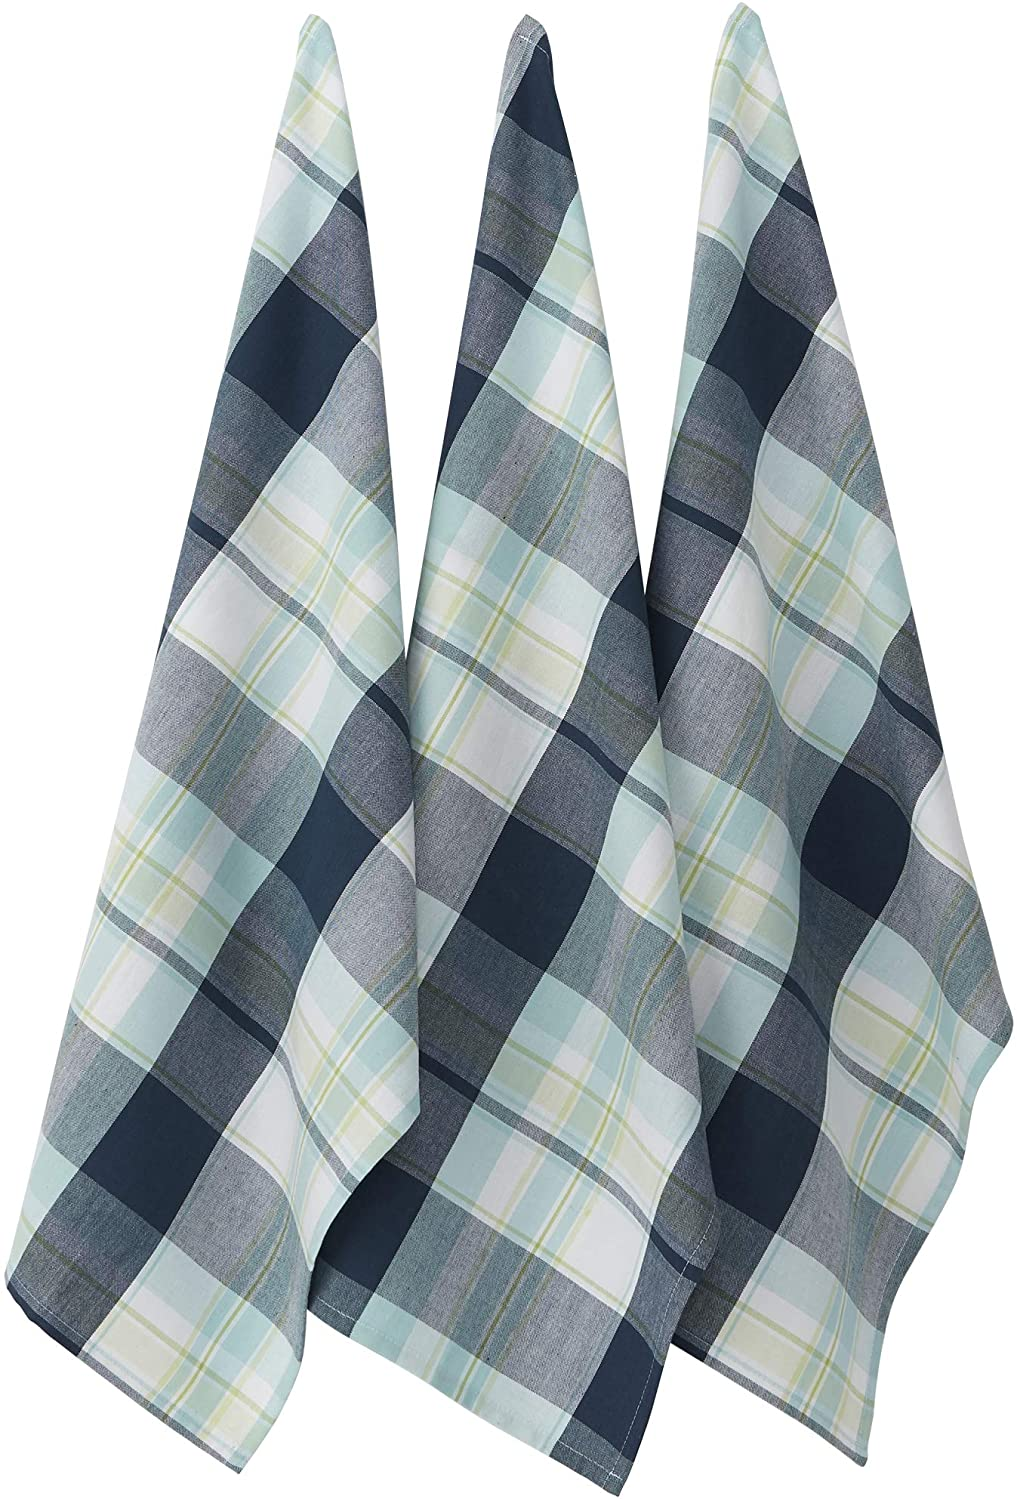 DII 100% Cotton Lake Plaid Kitchen Towels, Set of 2